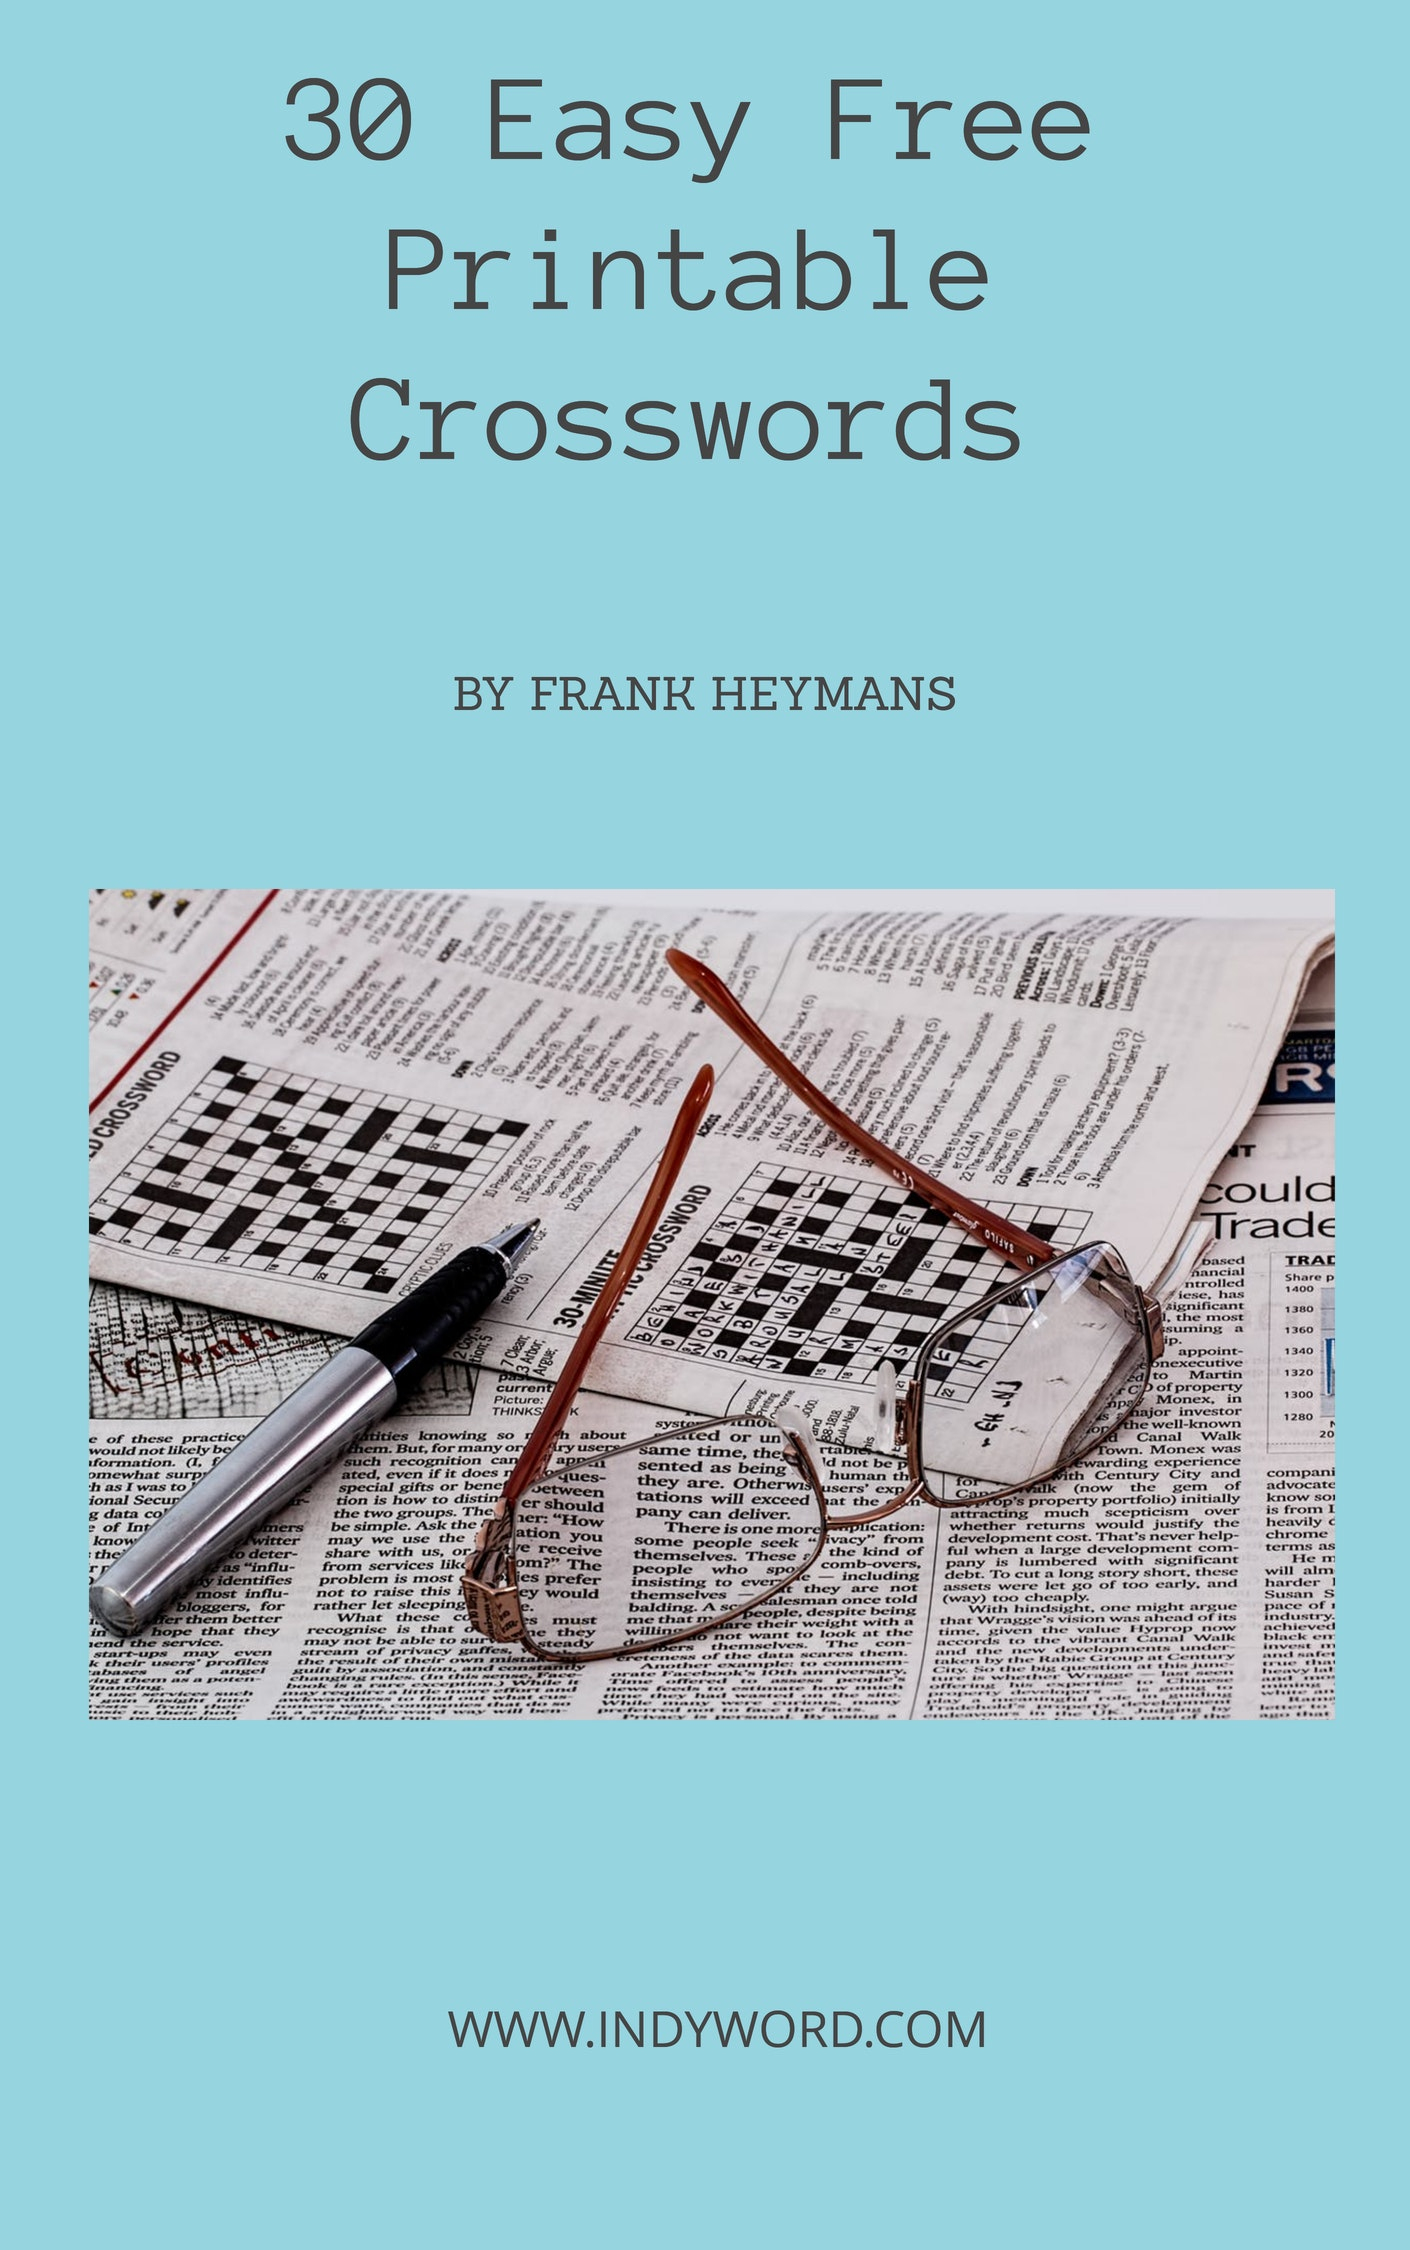 Easy Crossword Puzzles Printable - Printable Crossword Book